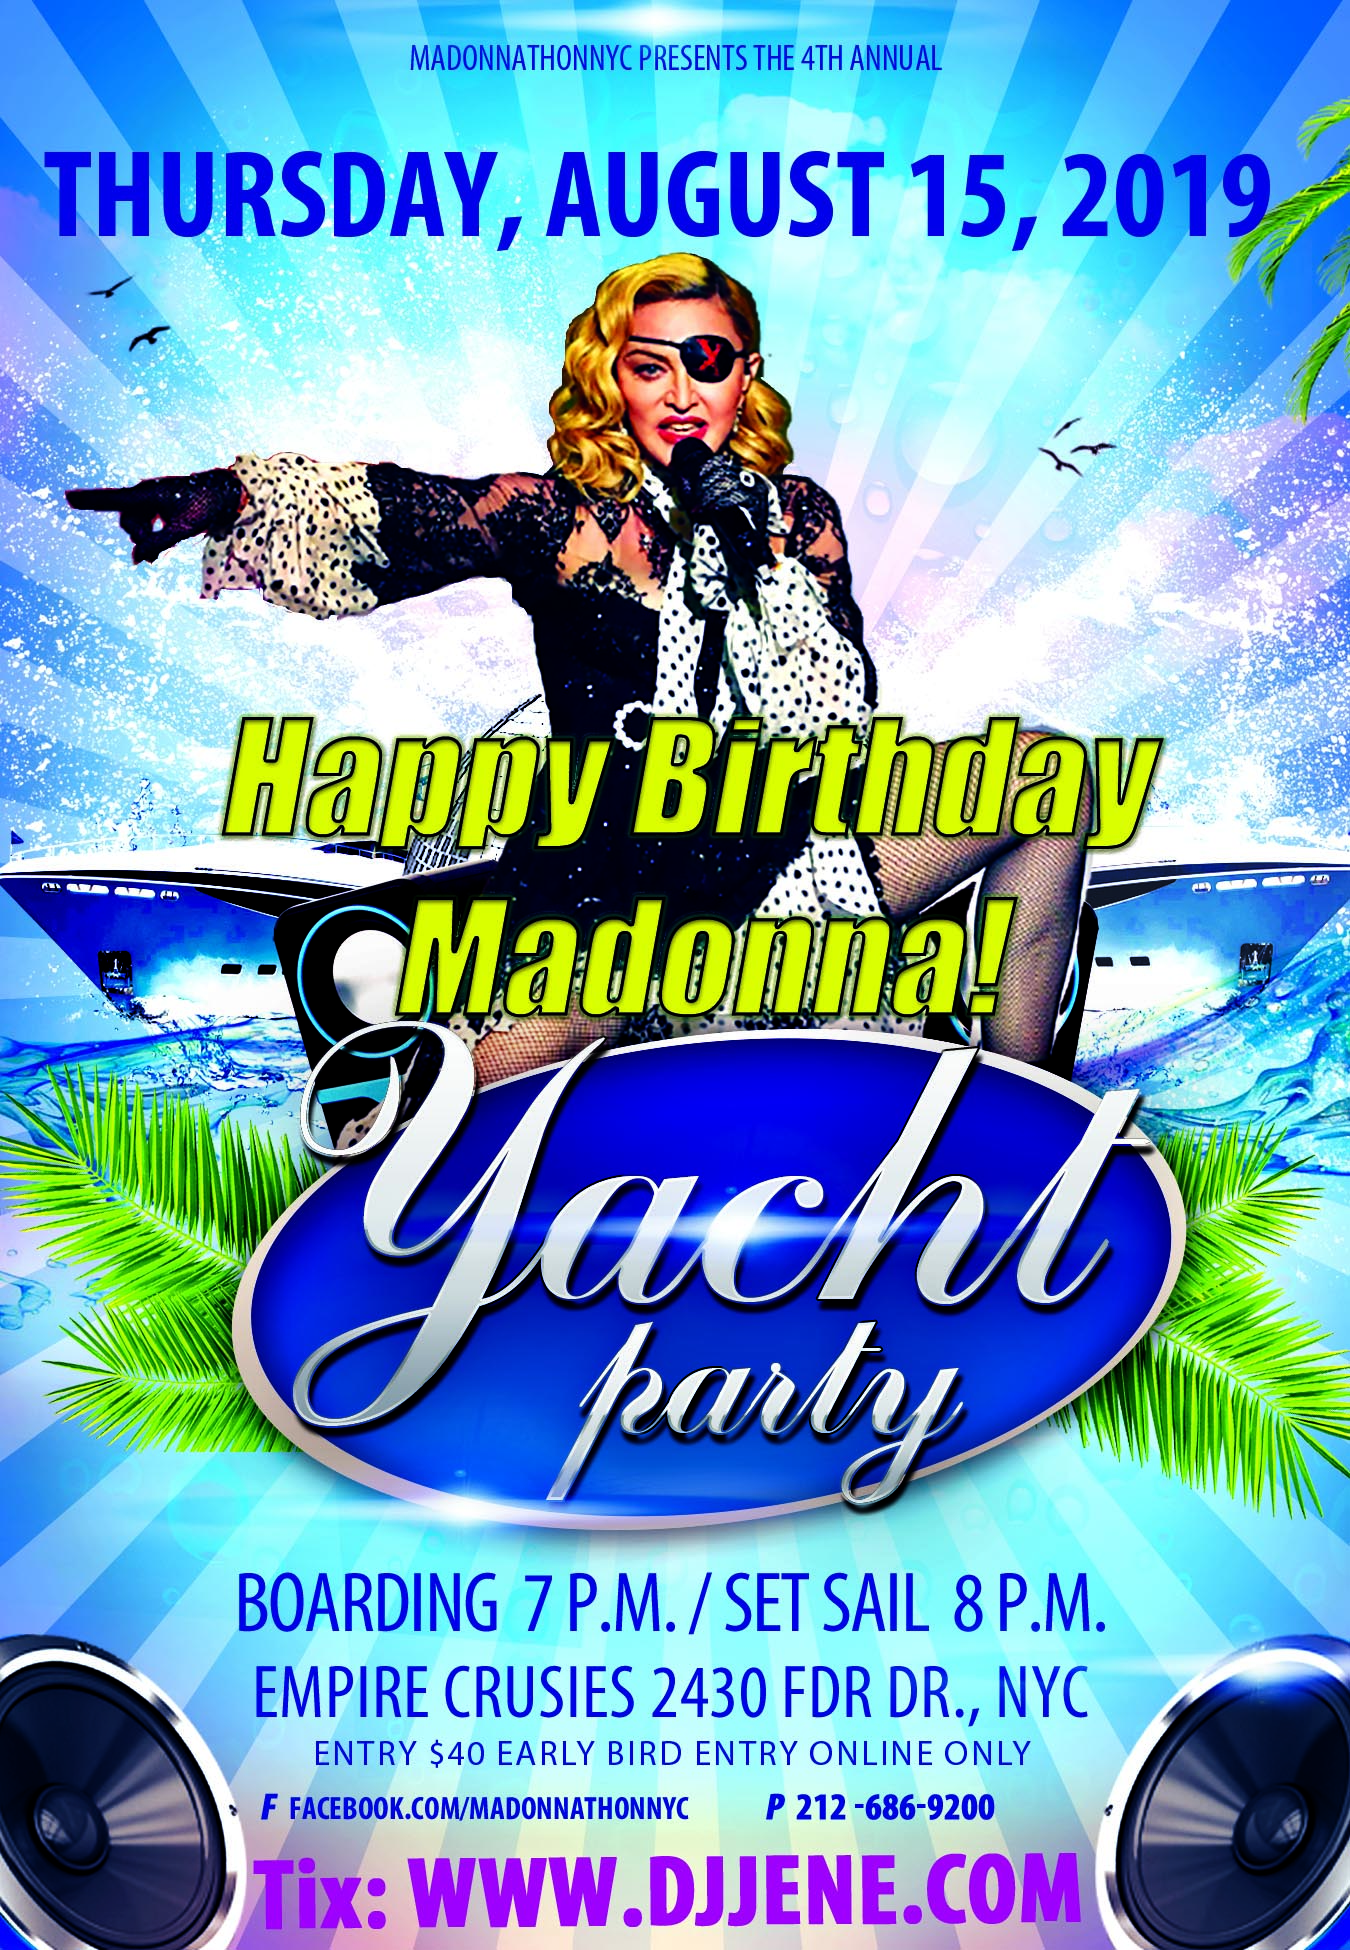 madonna yacht party flyer